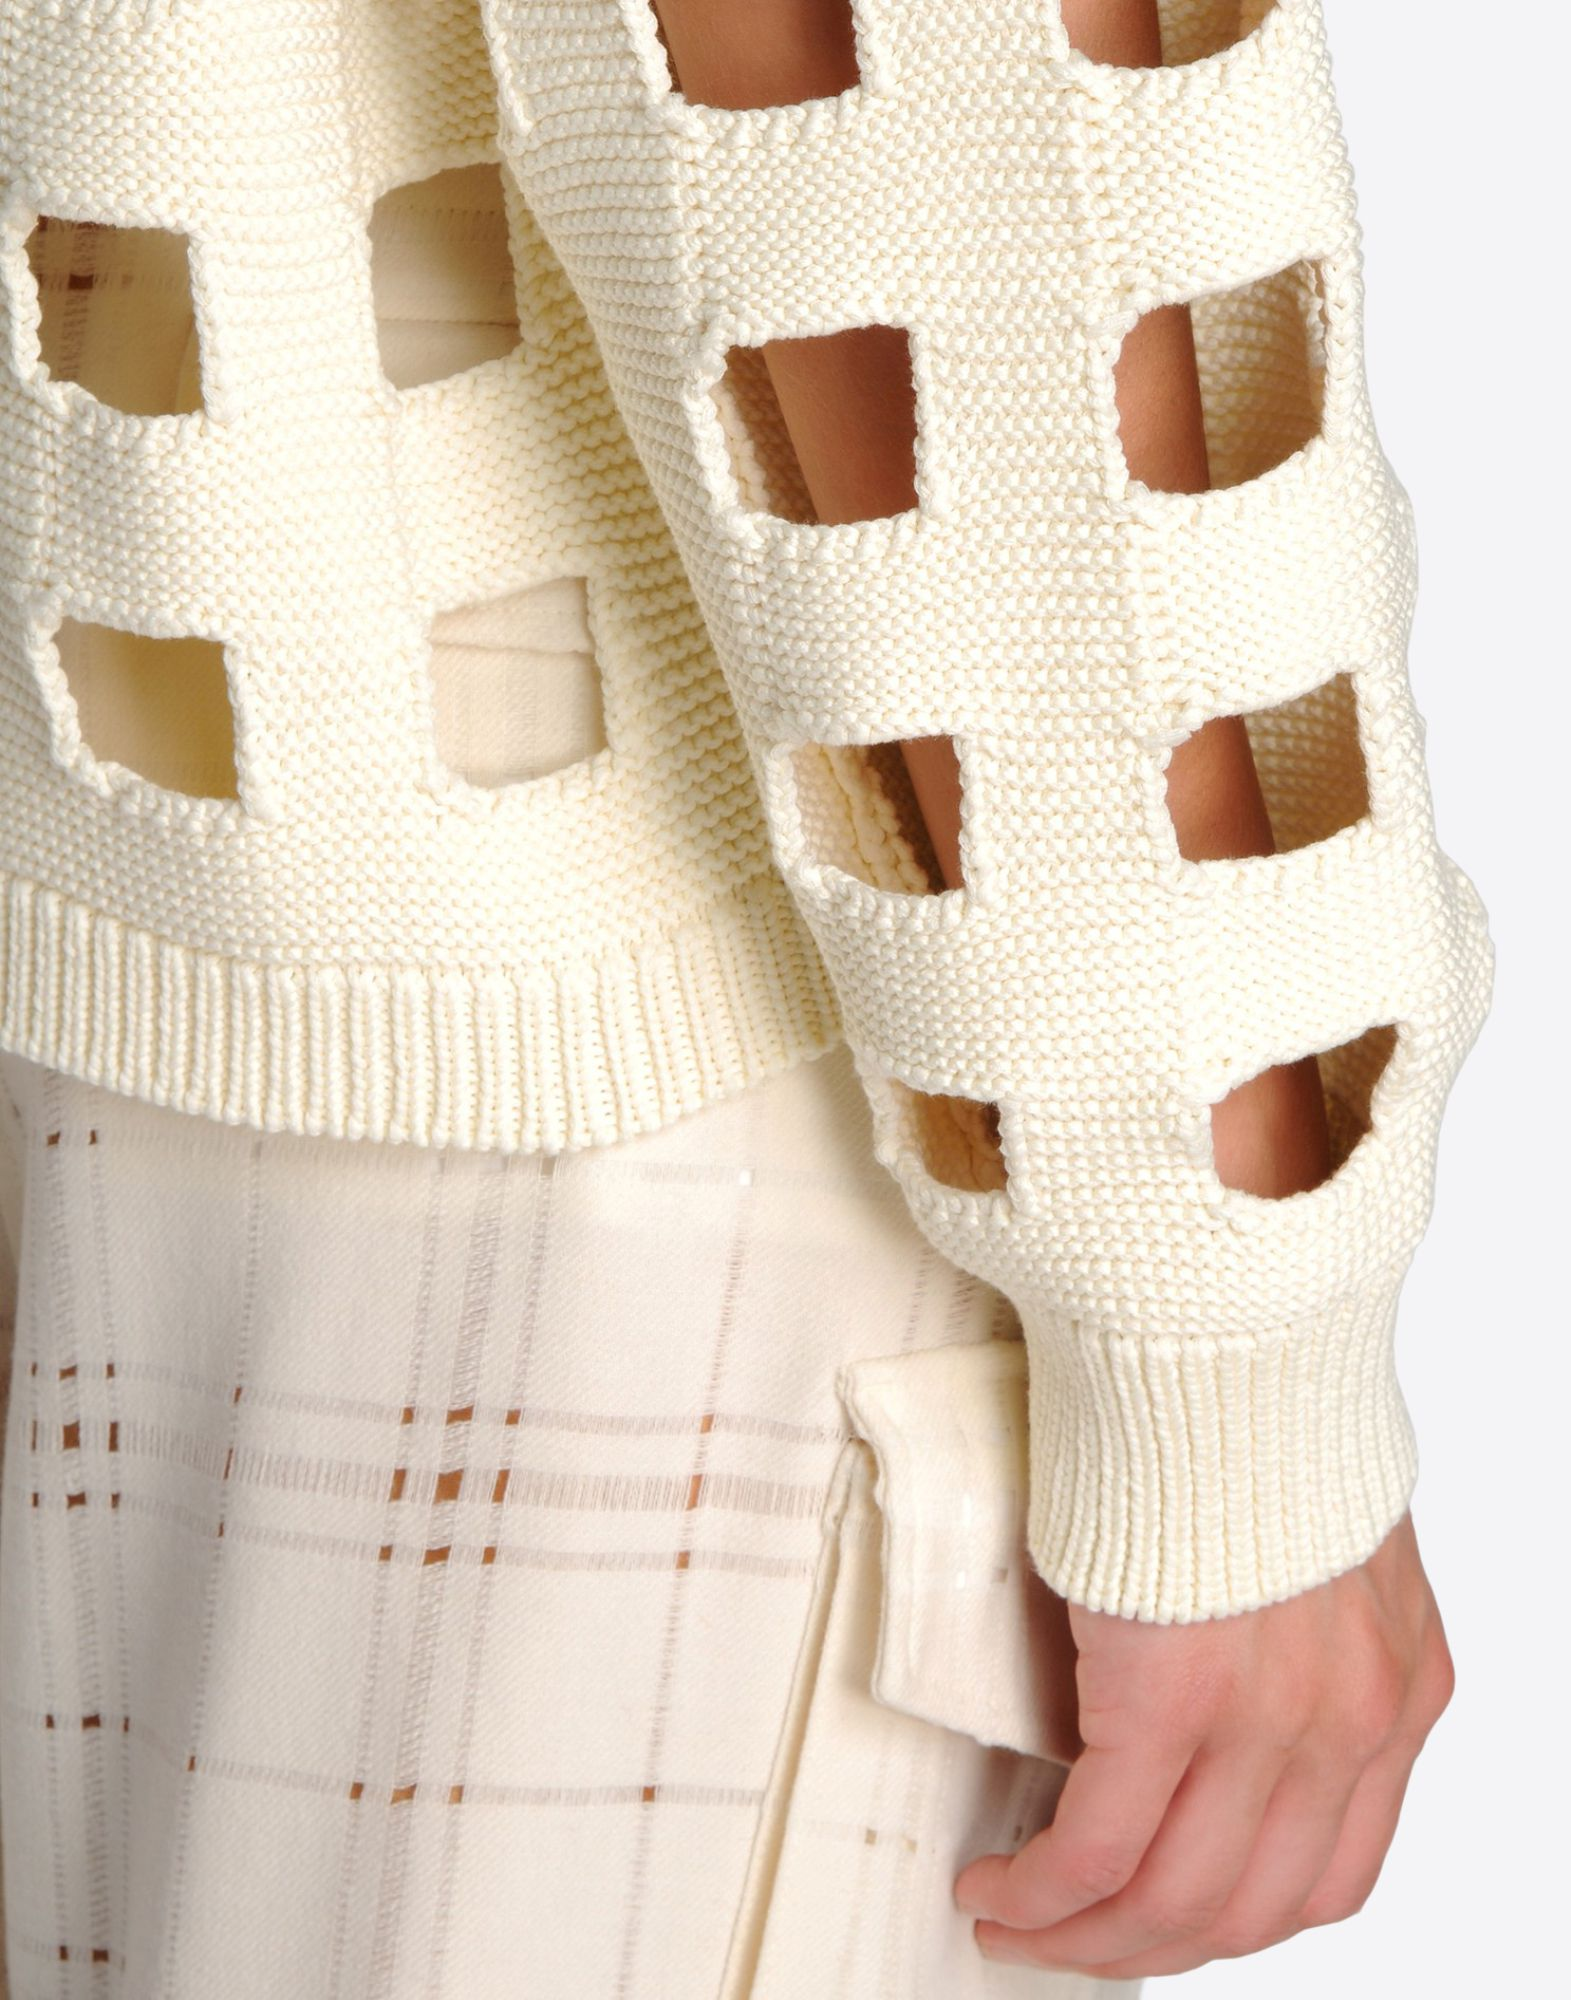 MAISON MARGIELA 1 Knit sweater with cut-out checks Long sleeve sweater Woman a